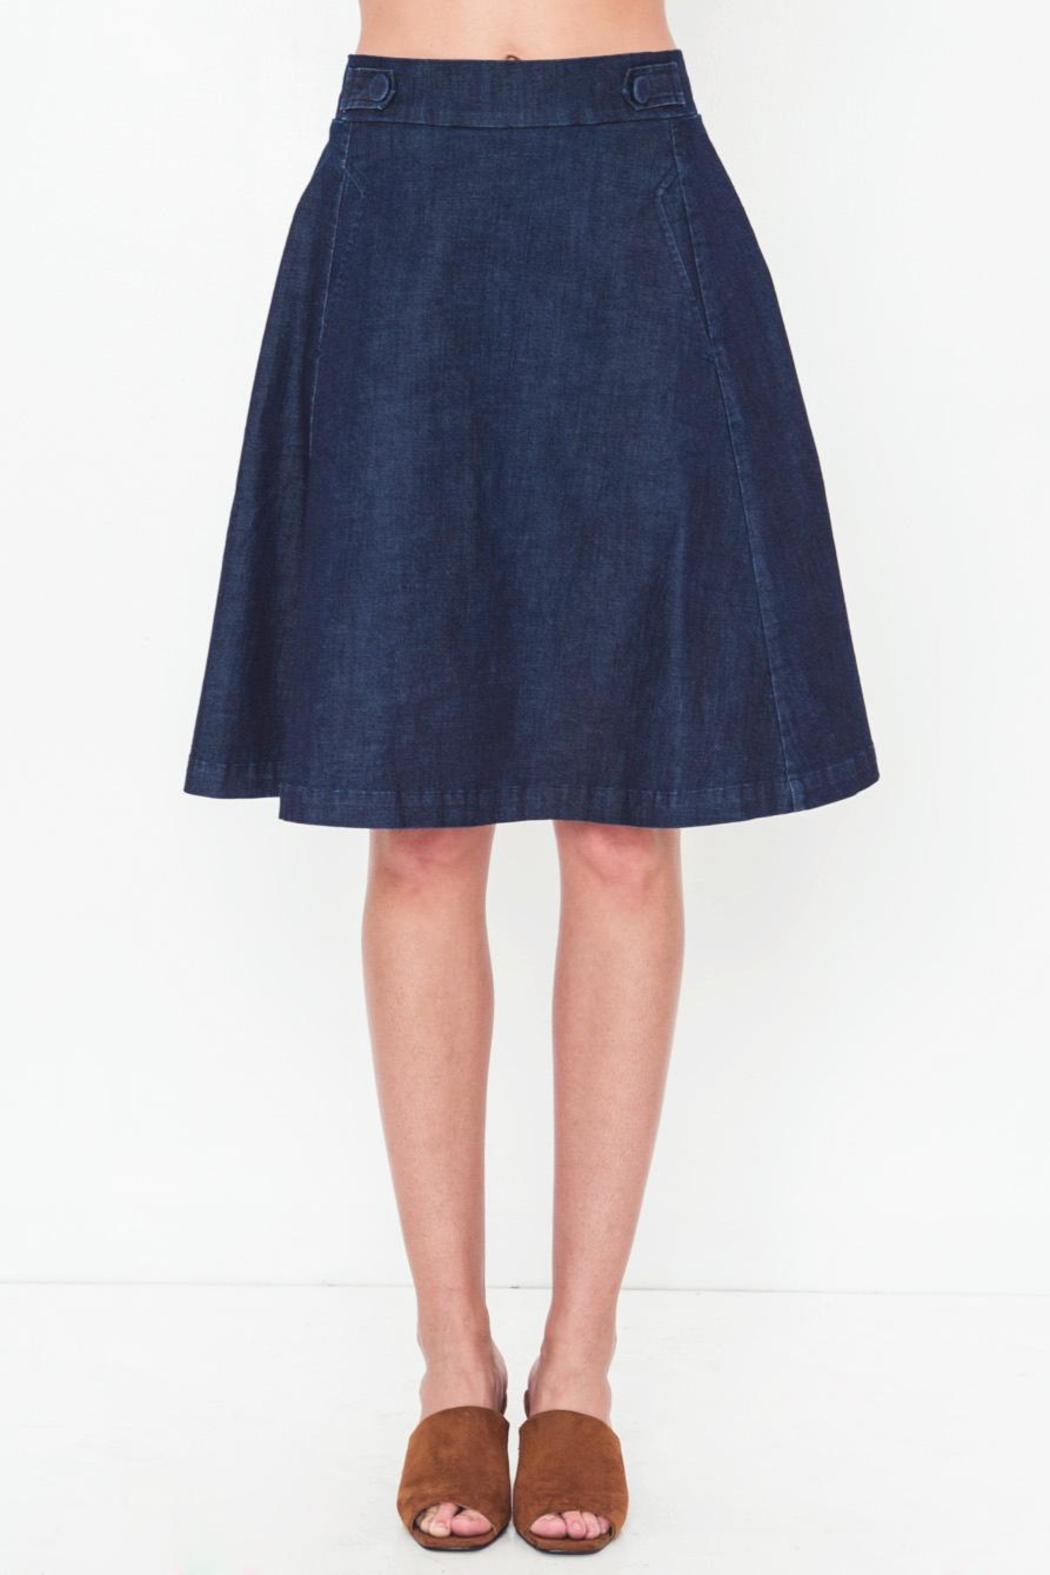 Movint Midi Length A Line Skirt from SoHo by Mo:Vint ...